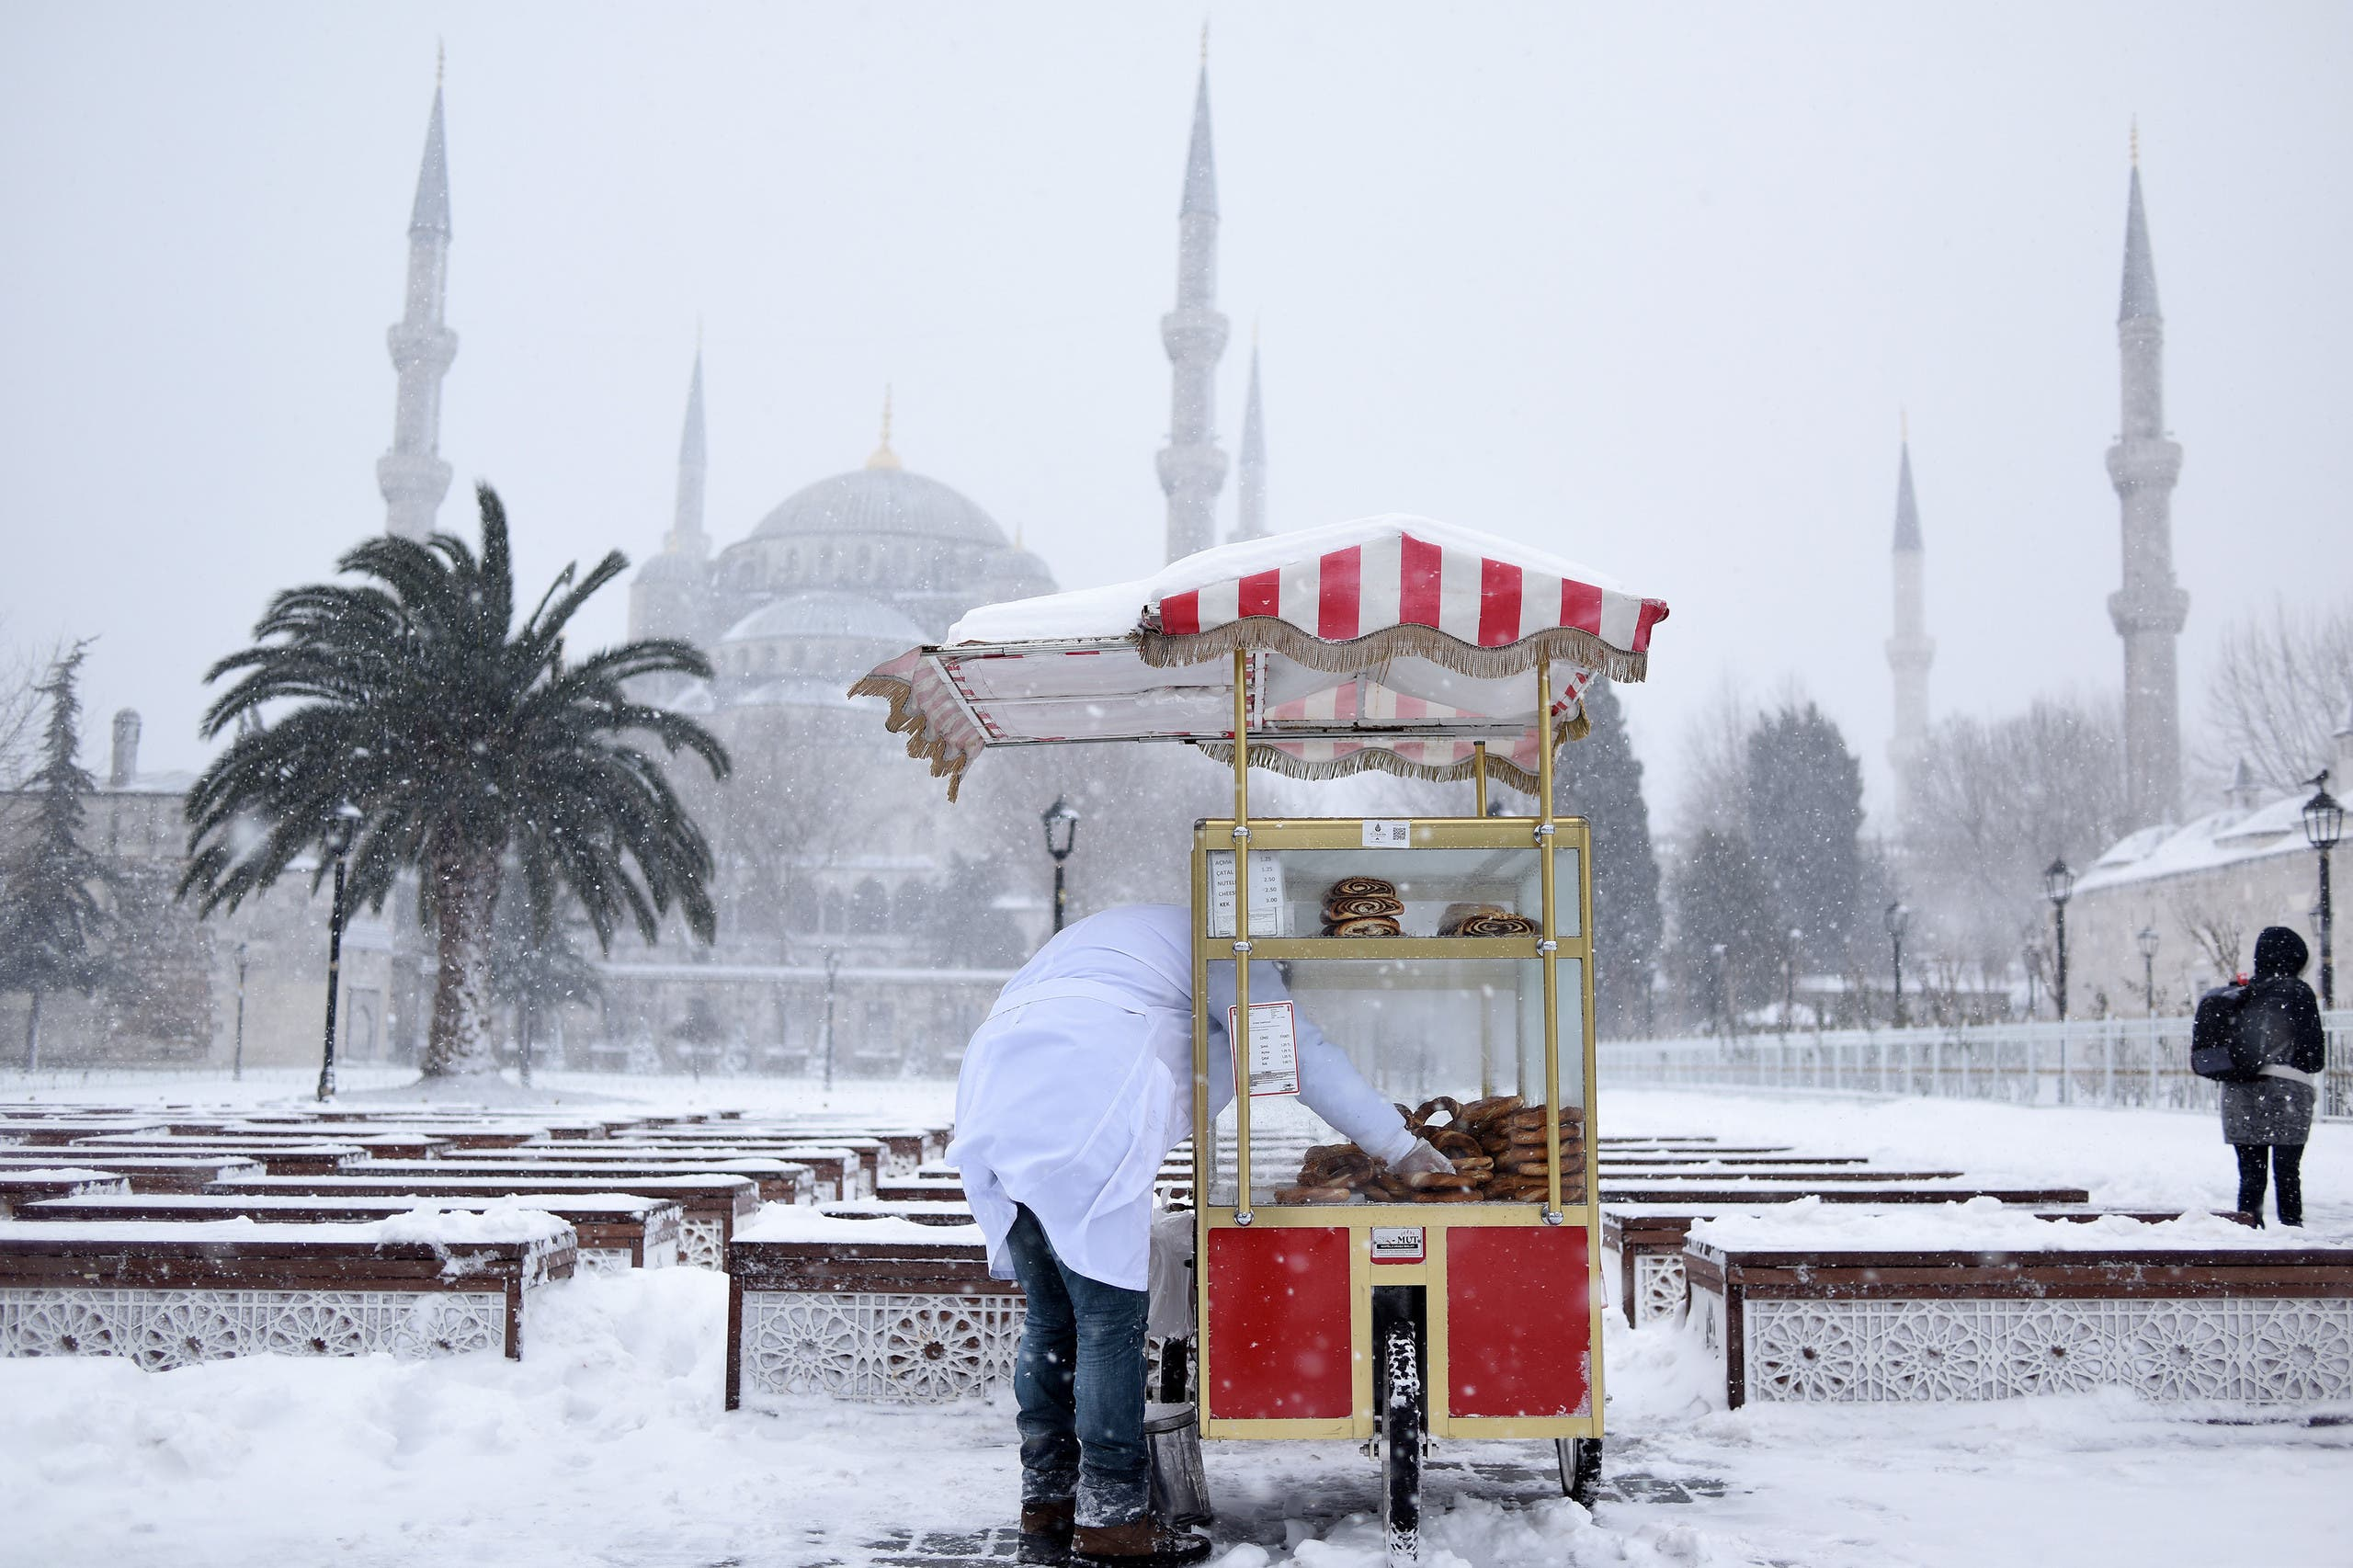 Snow blankets parts of the world